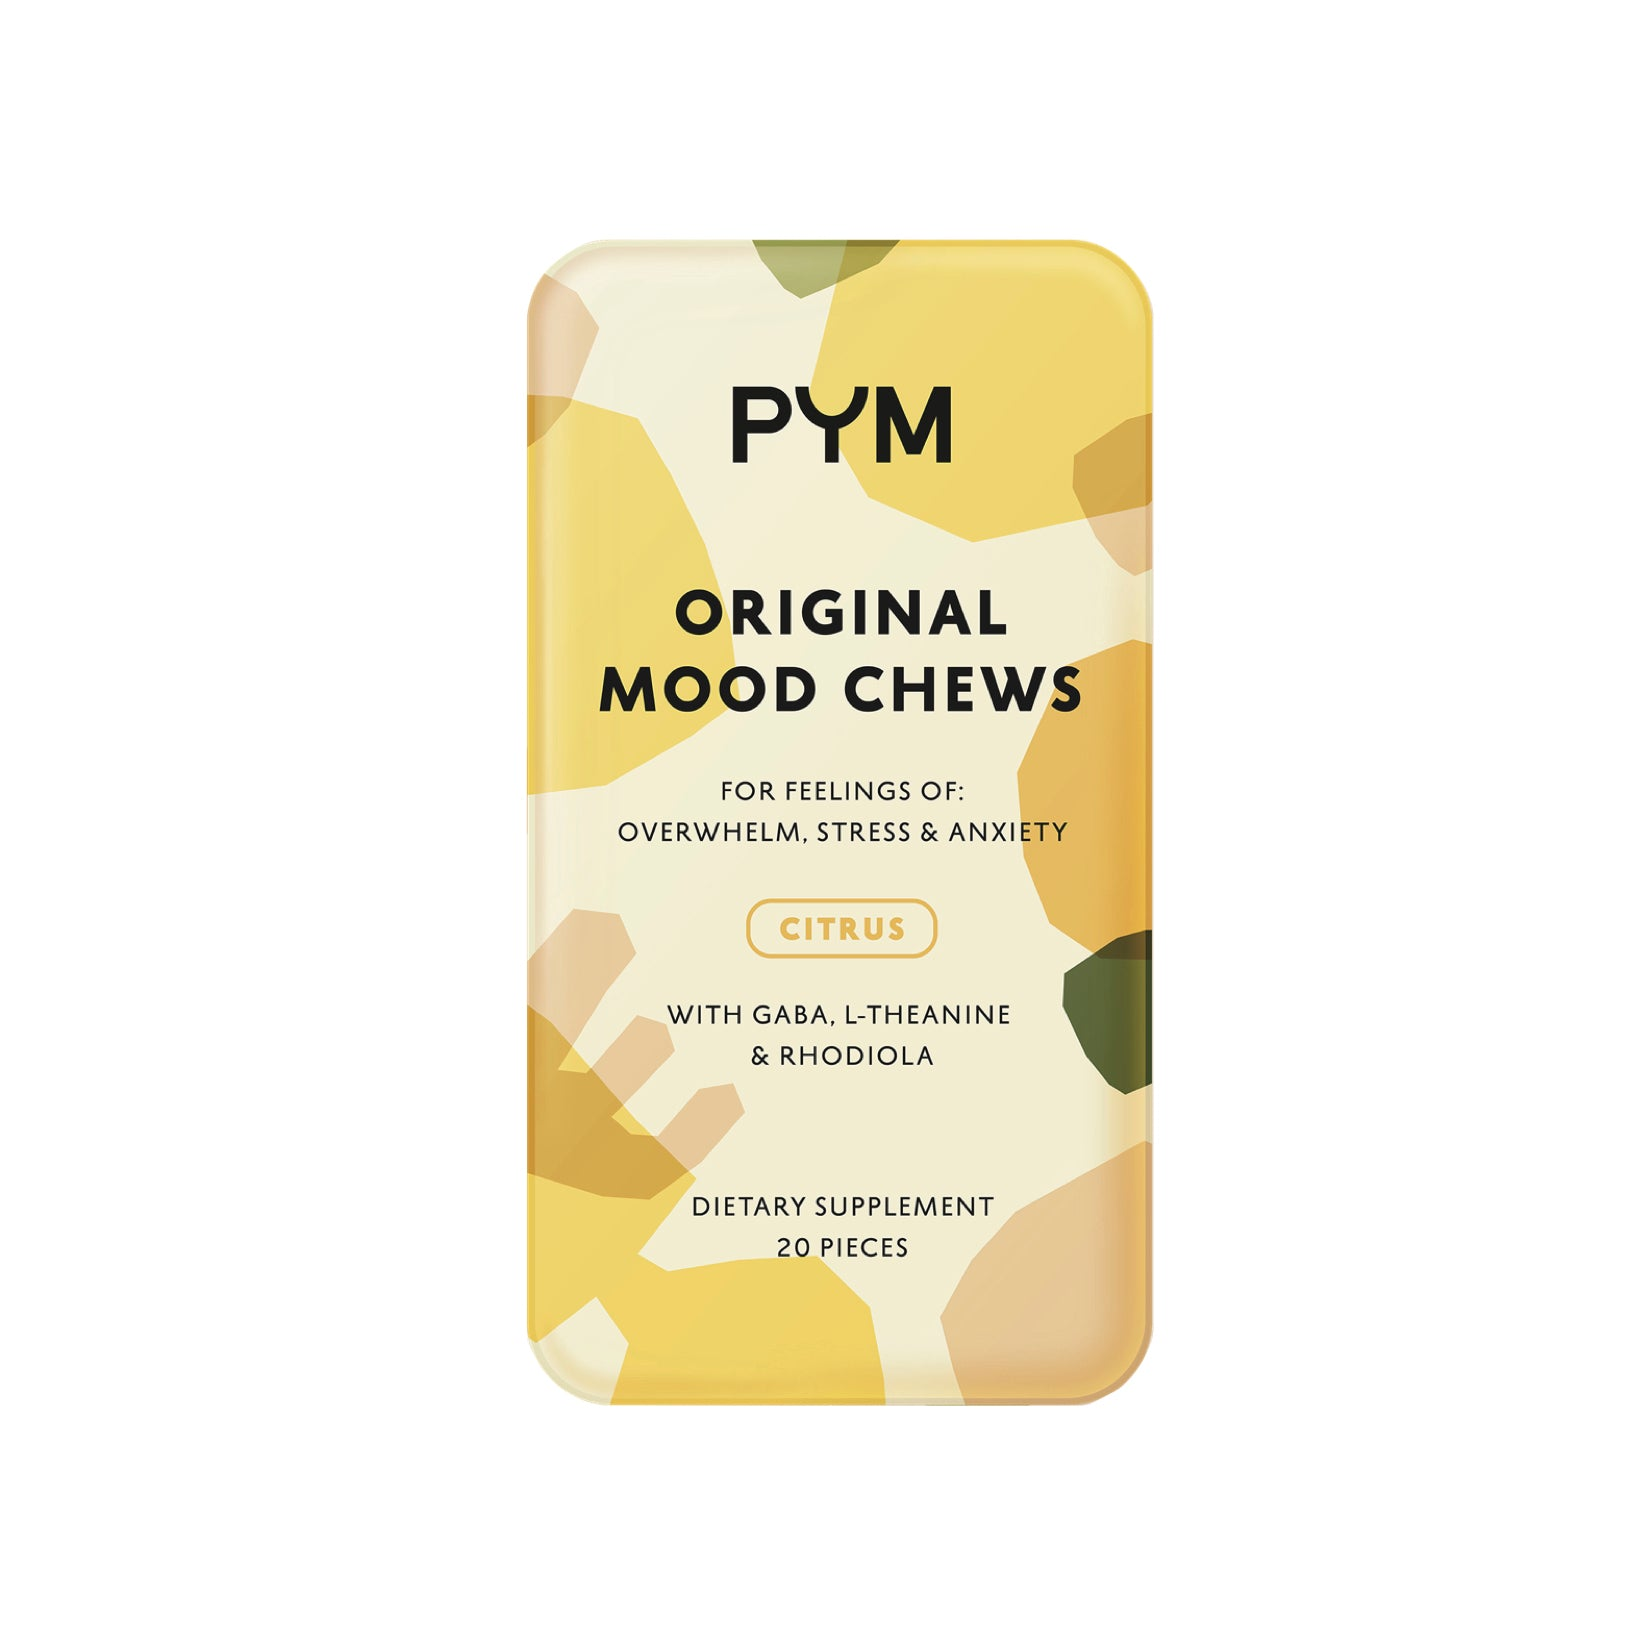 Original Mood Chews